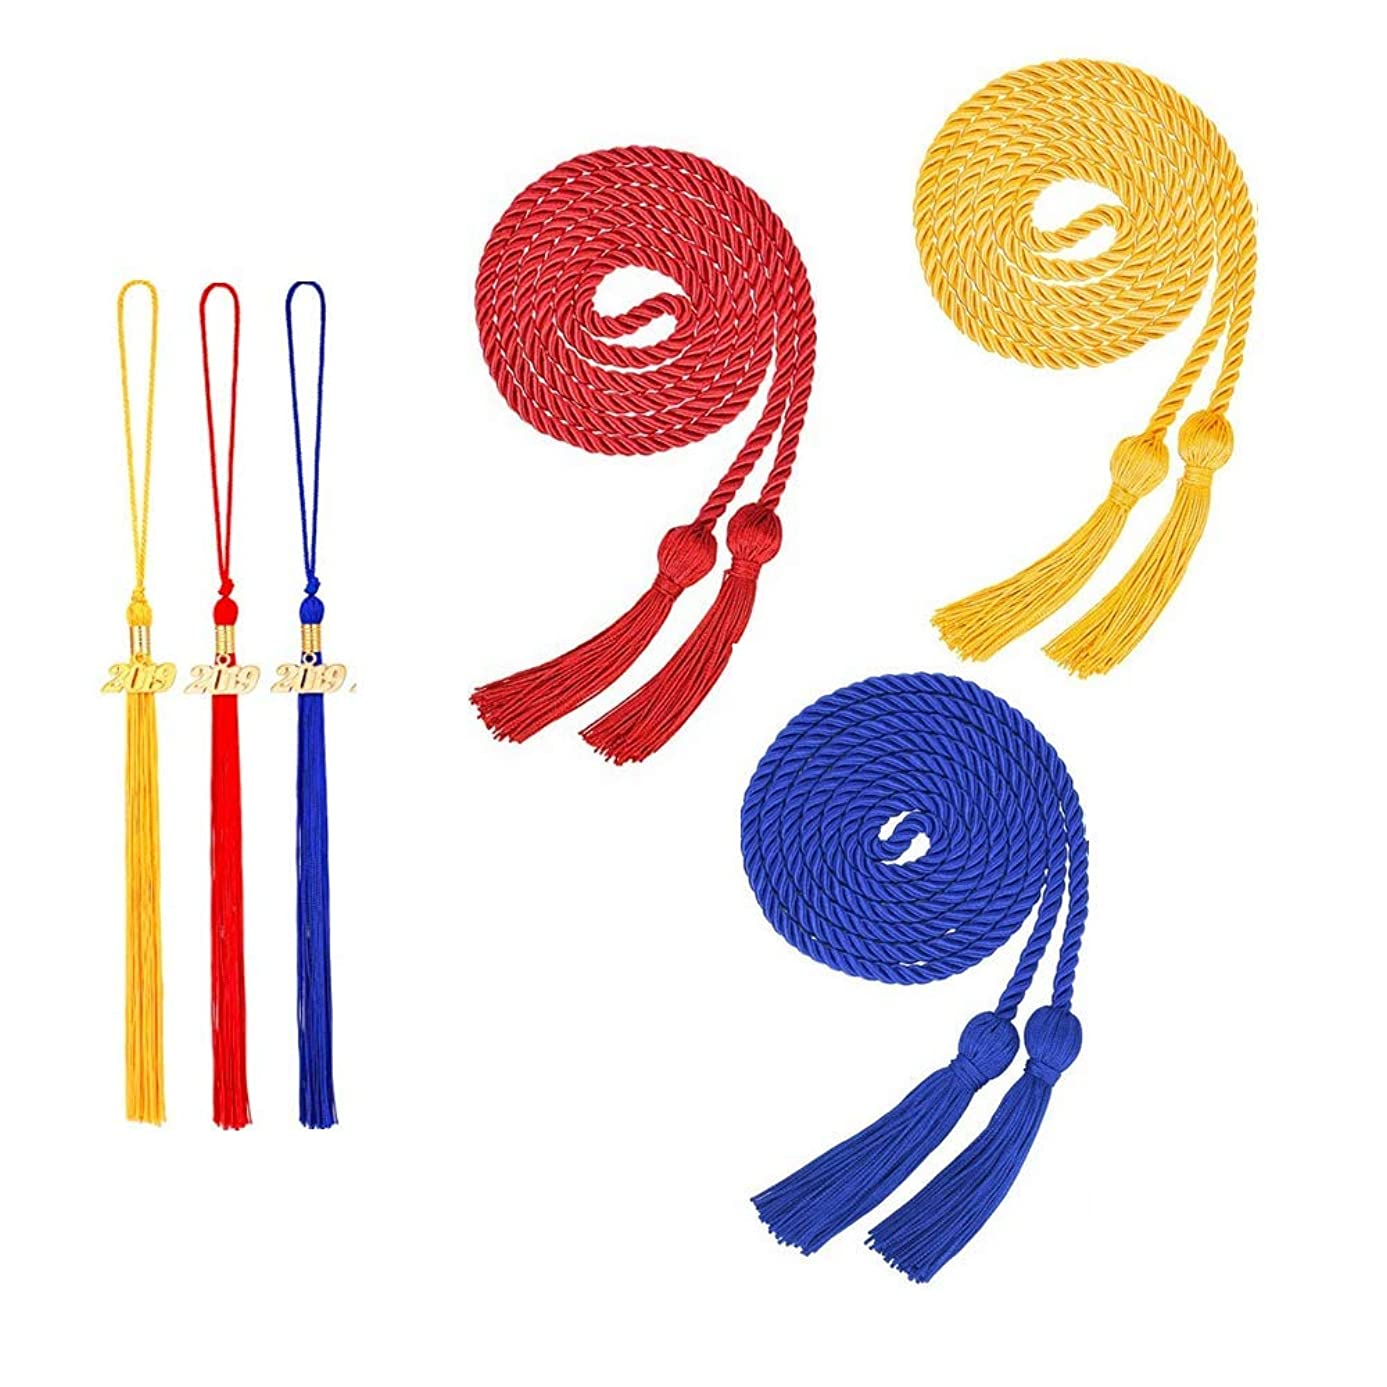 Chris.W 3Pcs Graduation Honor Cords with 3Pcs 2019 Year Graduation Cap Tassels Set, Braided Honor Cords for Grad Days and Graduates Photography Decorations(Red/Blue/Gold)